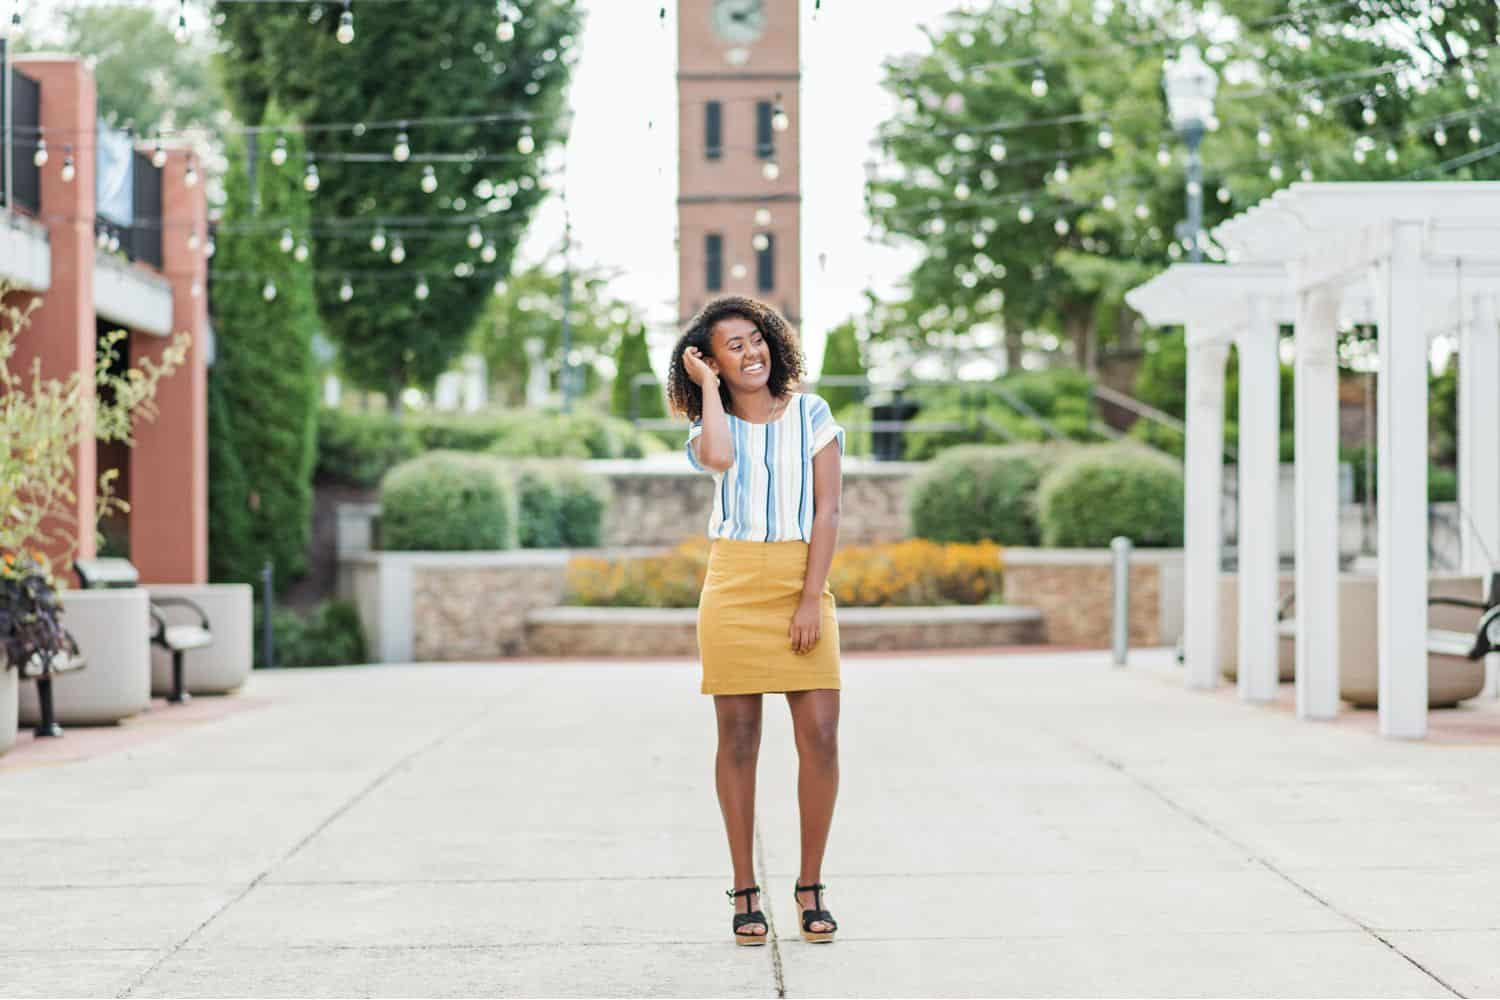 A high school senior girl poses in the town square wearing a mustard yellow mini skirt and a blue-striped white blouse.